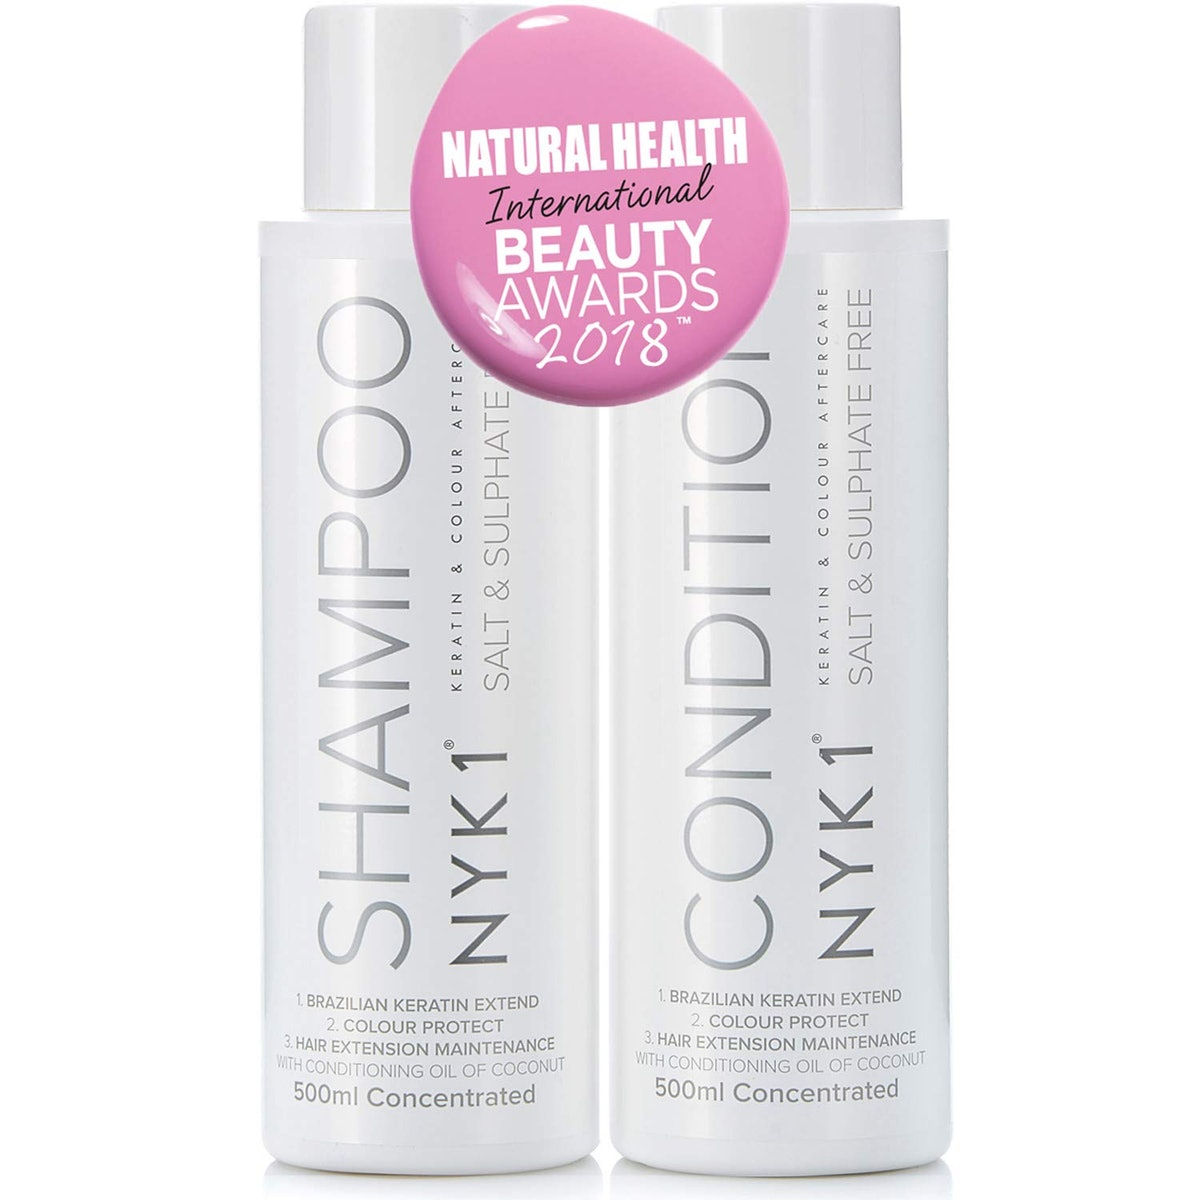 NYK1 Salt Free And Sulfate Free Shampoo & Conditioner